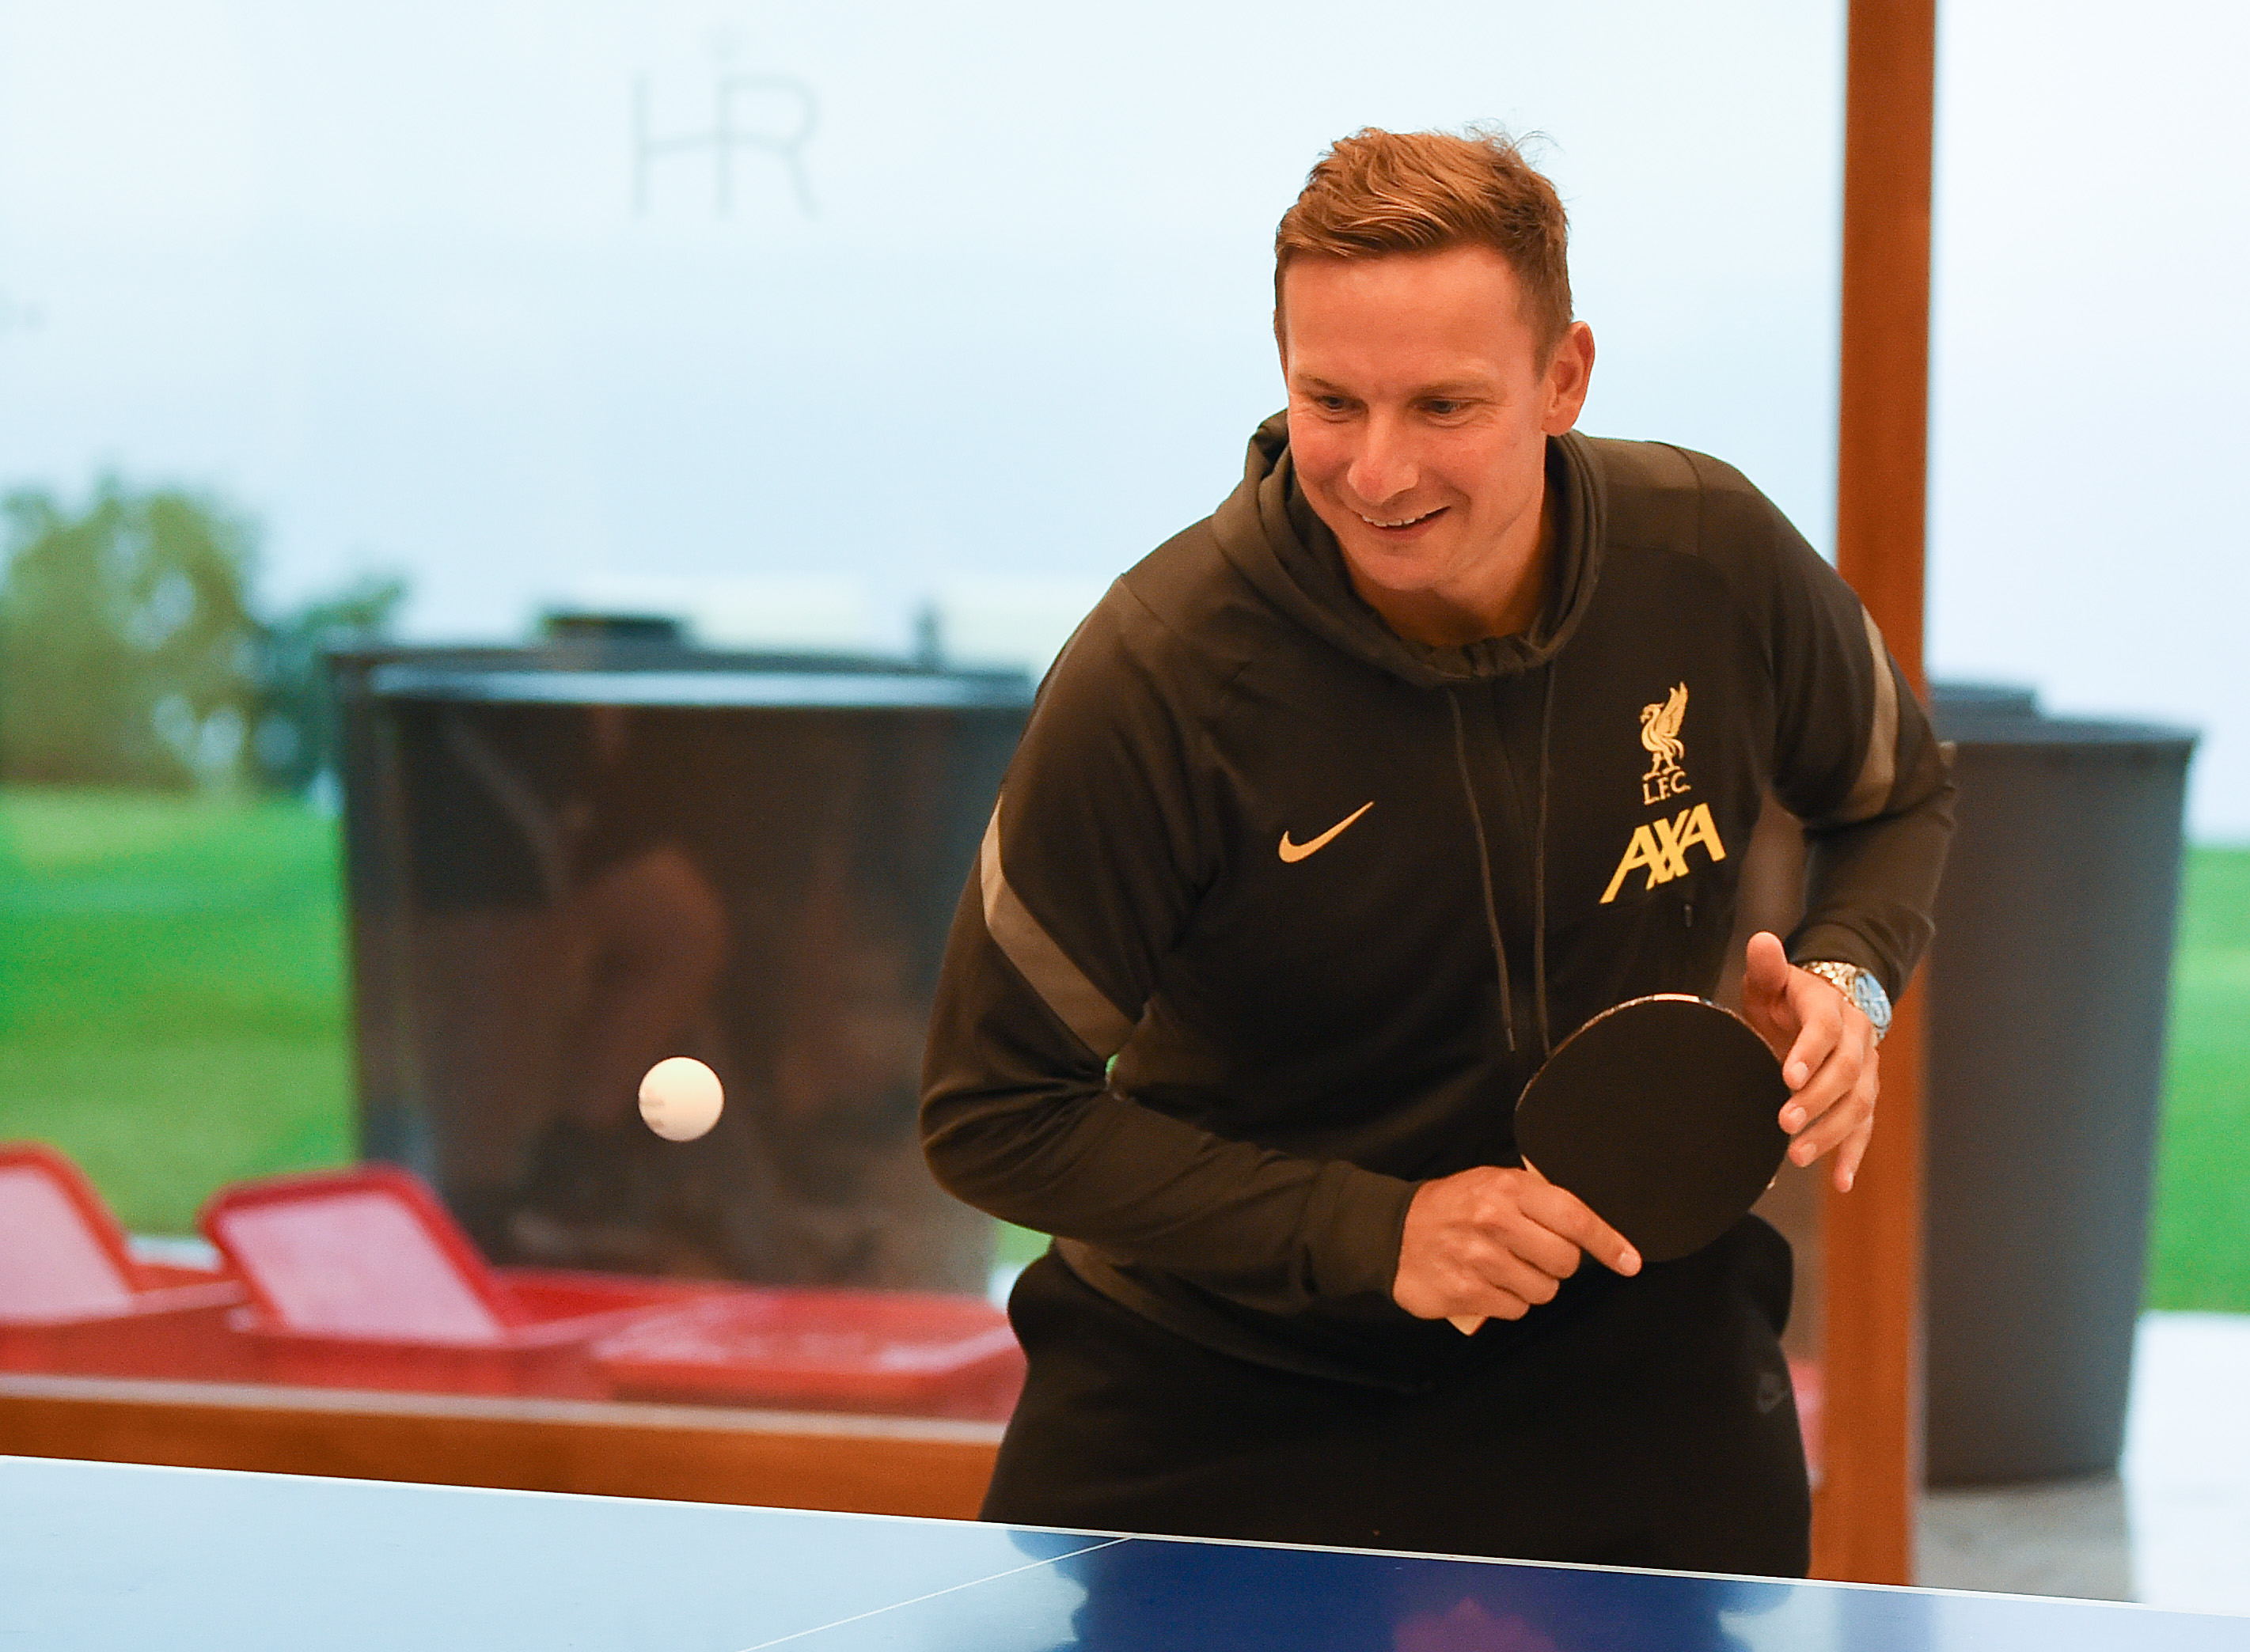 Liverpool Players Play a Table Tennis Tournament at Their Pre-Season Training Camp